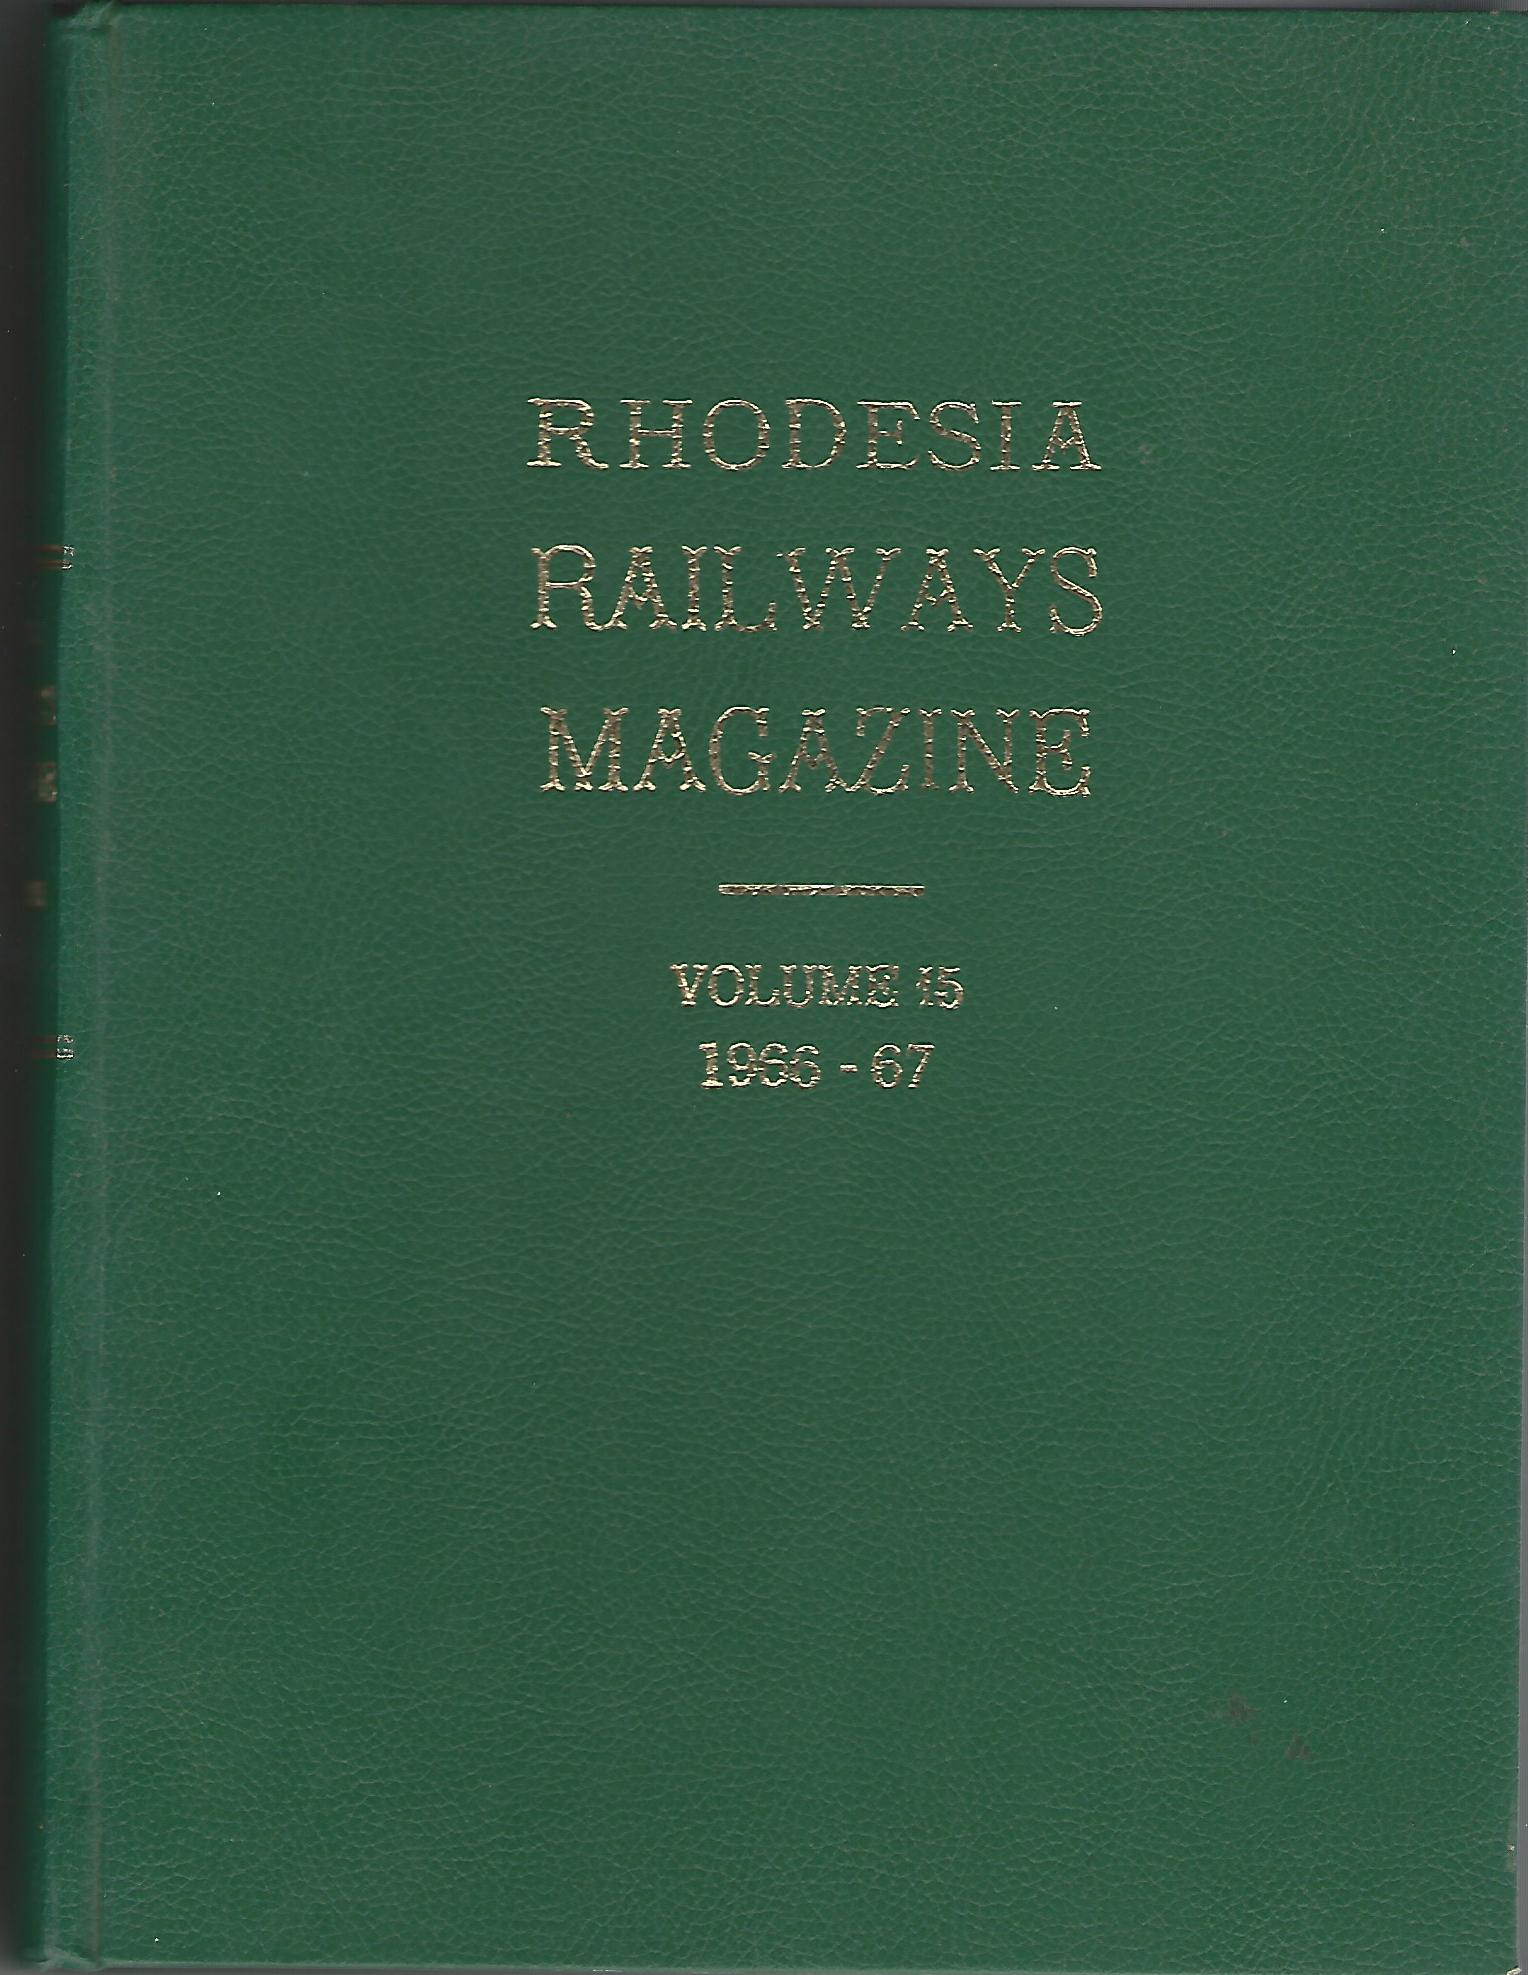 Image for Rhodesia Railways Magazine Volume 15: 1966-67